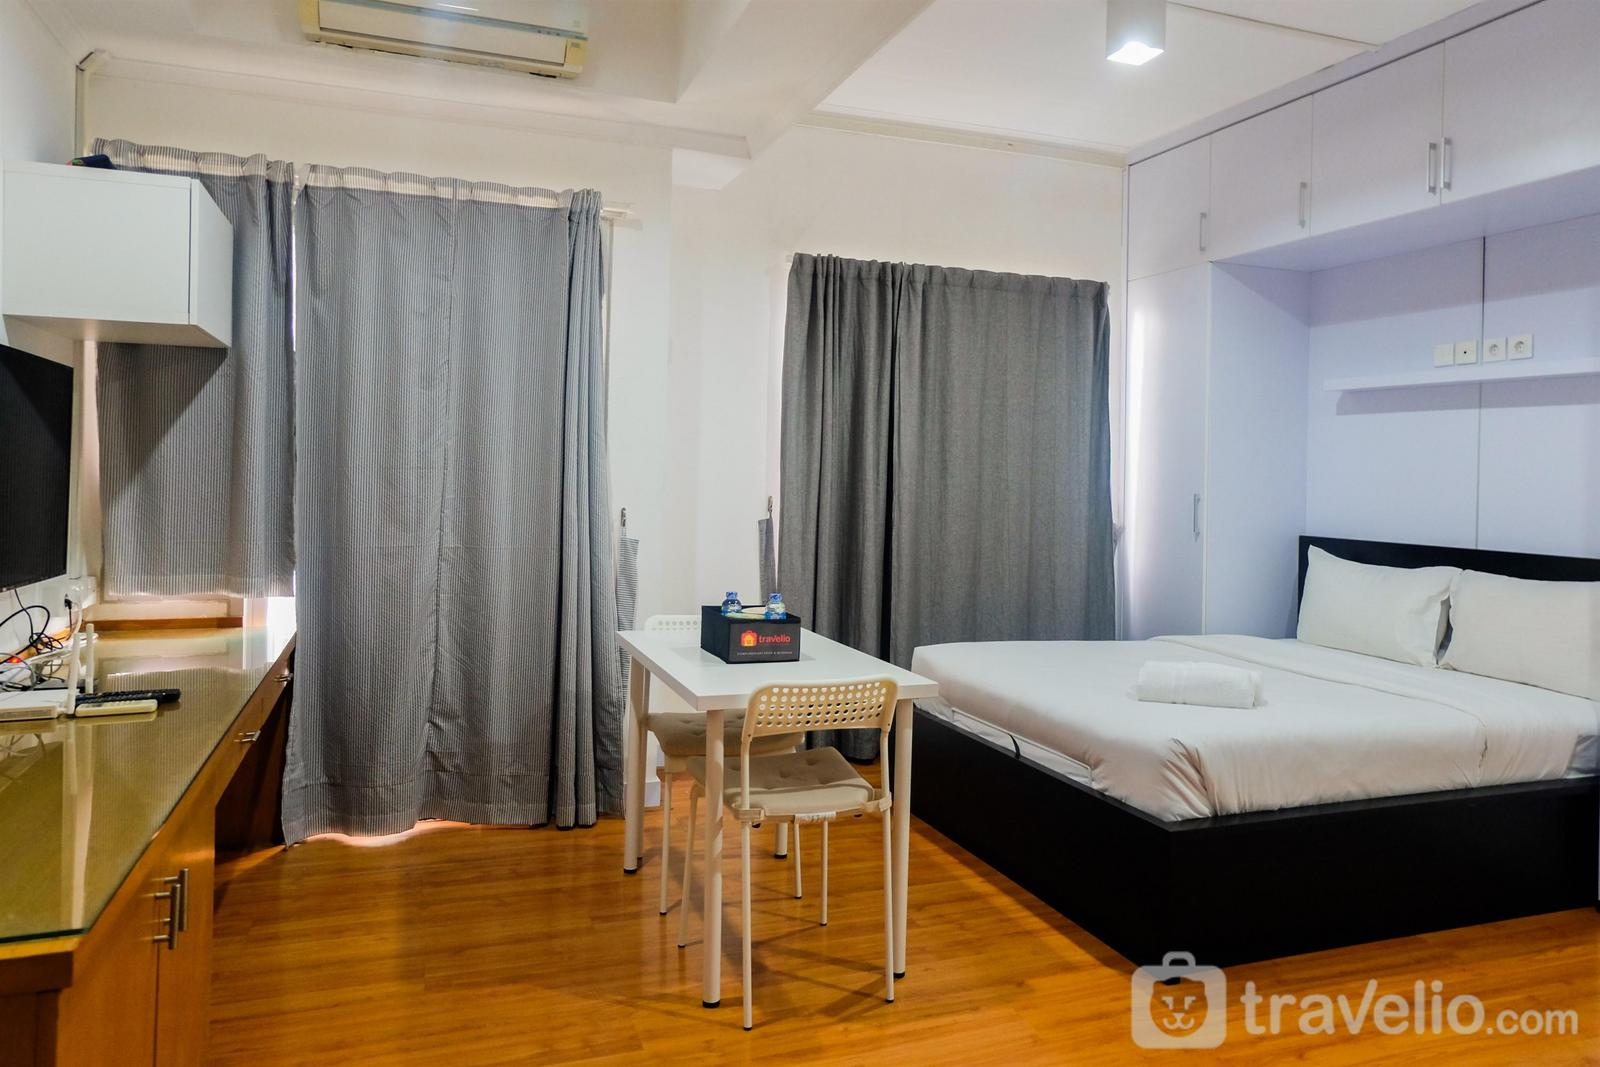 Sudirman Park Apartment - Prime Location Sudirman Park Studio Apartment By Travelio